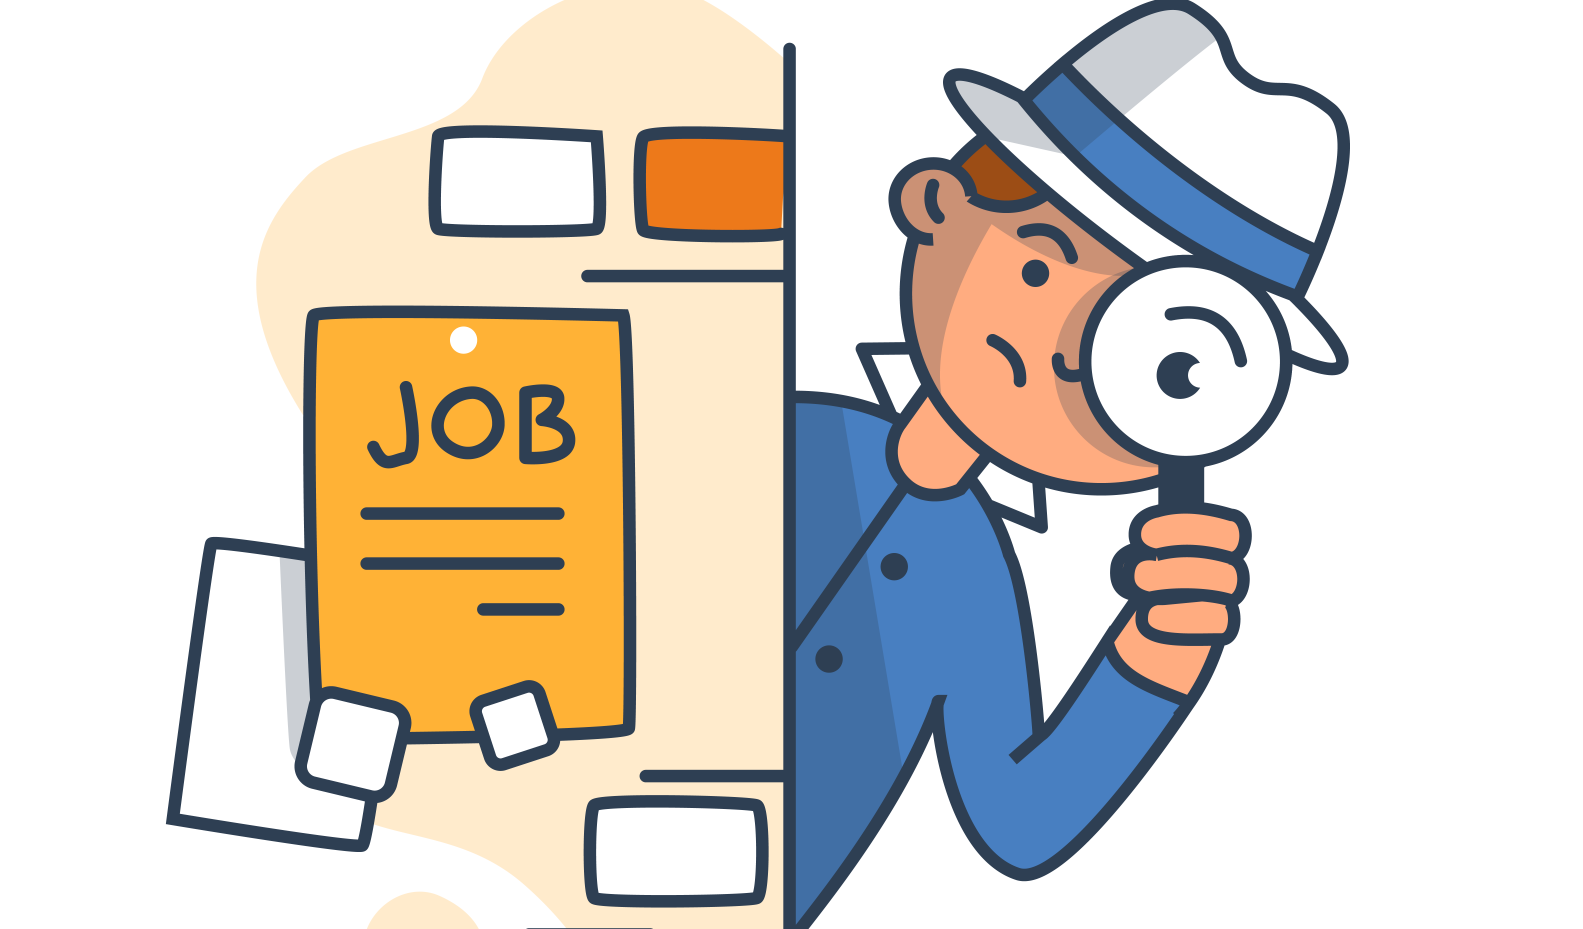 how to find job in europe from india